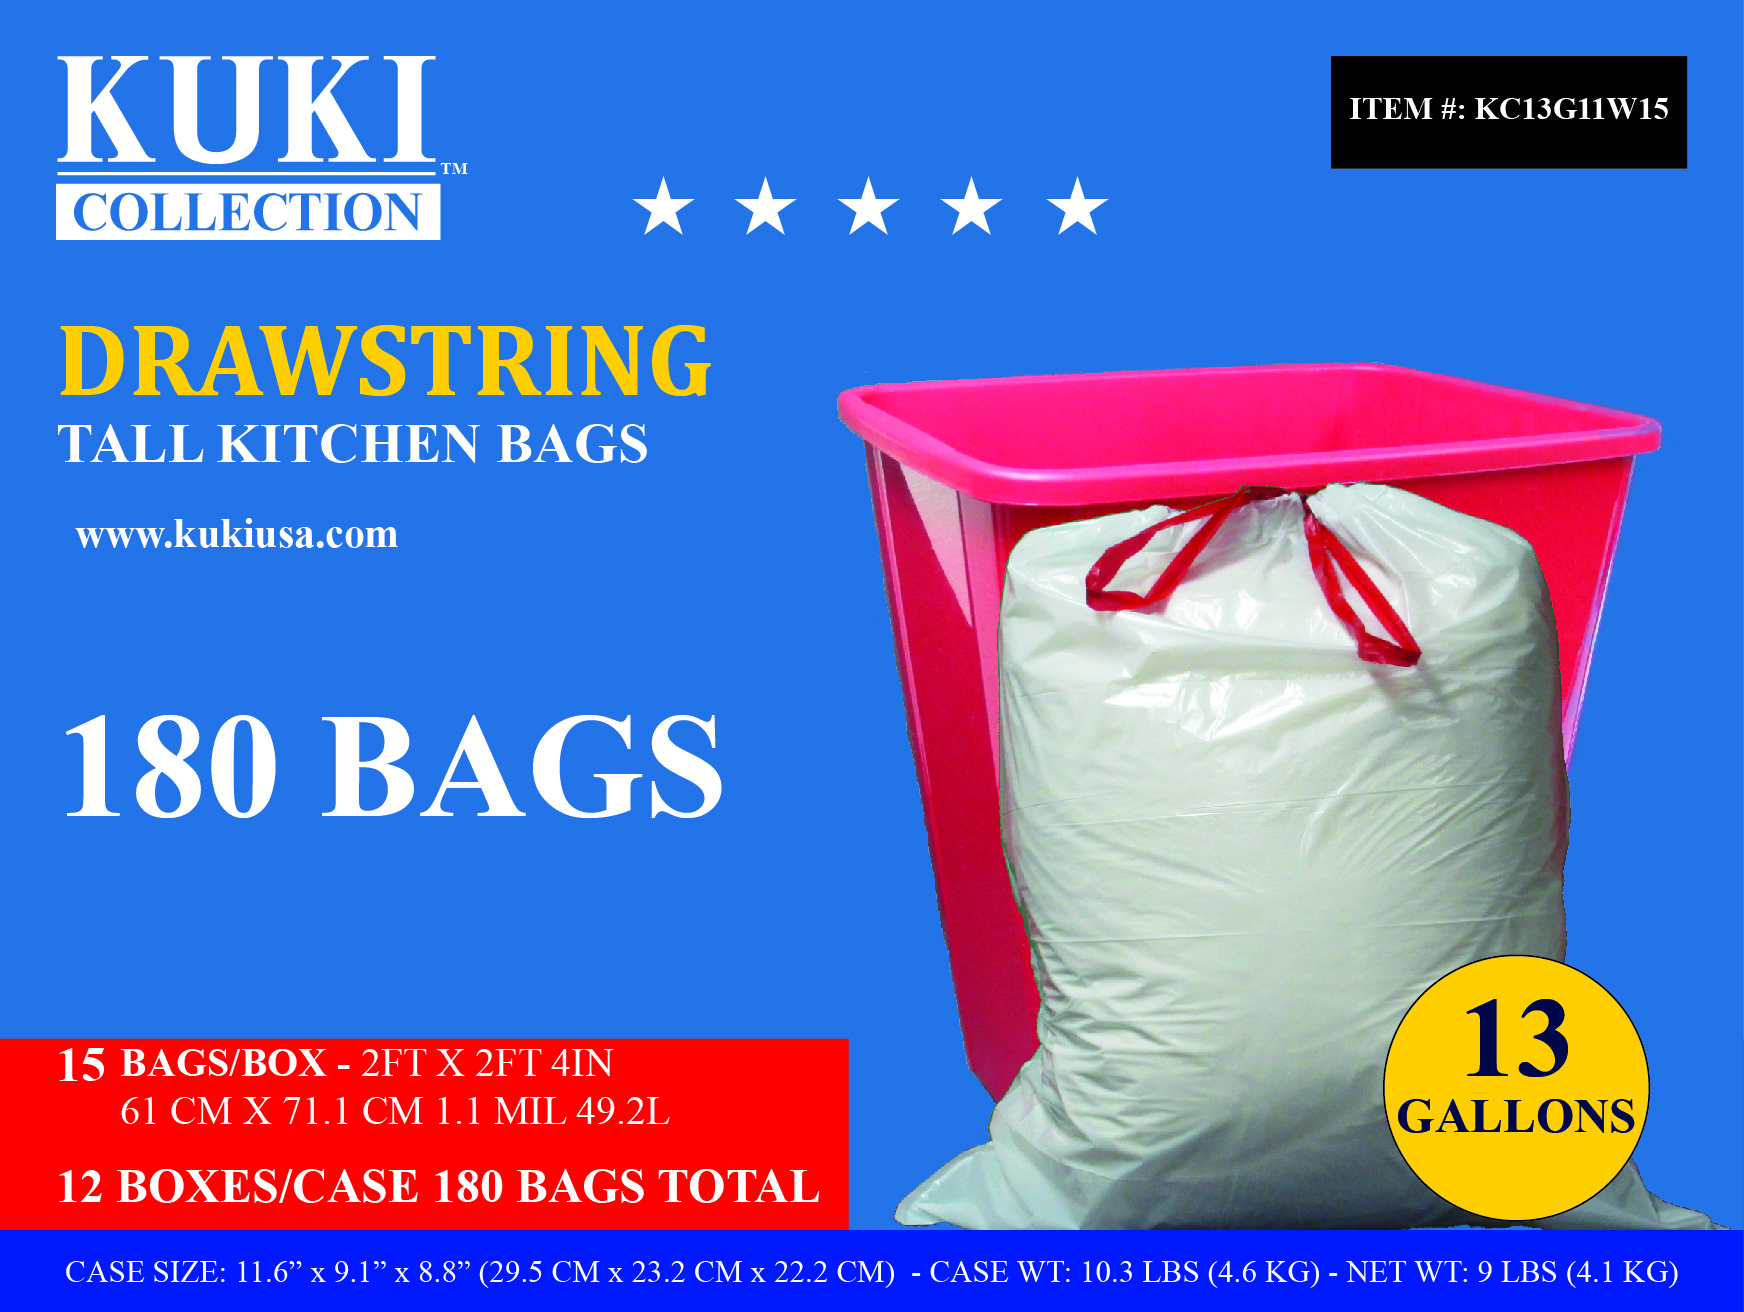 Kuki Collection 13 Gallon Retail Drawstring Case